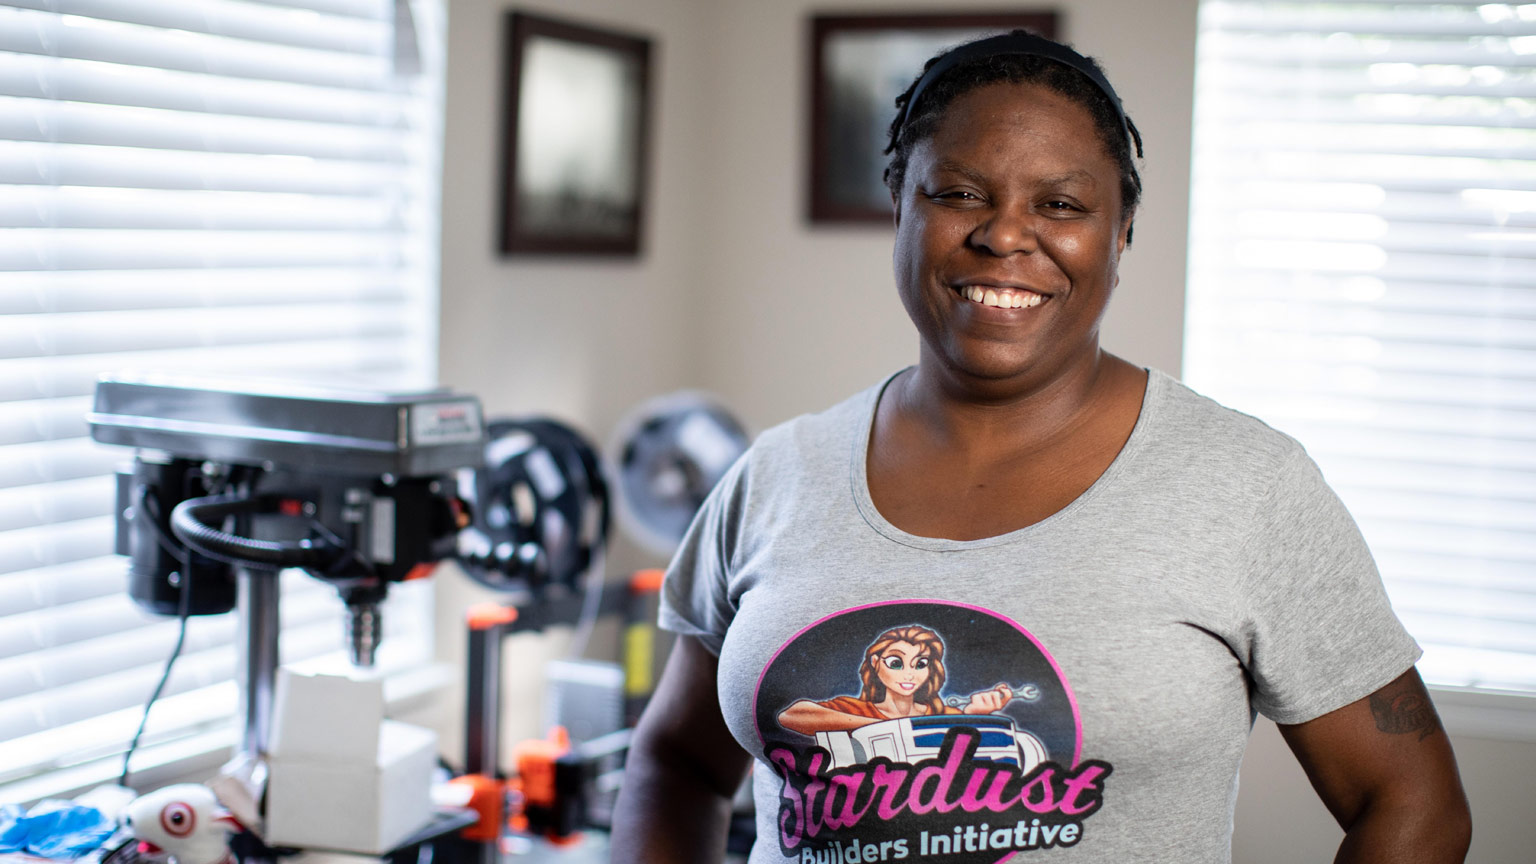 Christina Cato, droid builder, featured in Our Star Wars Stories.